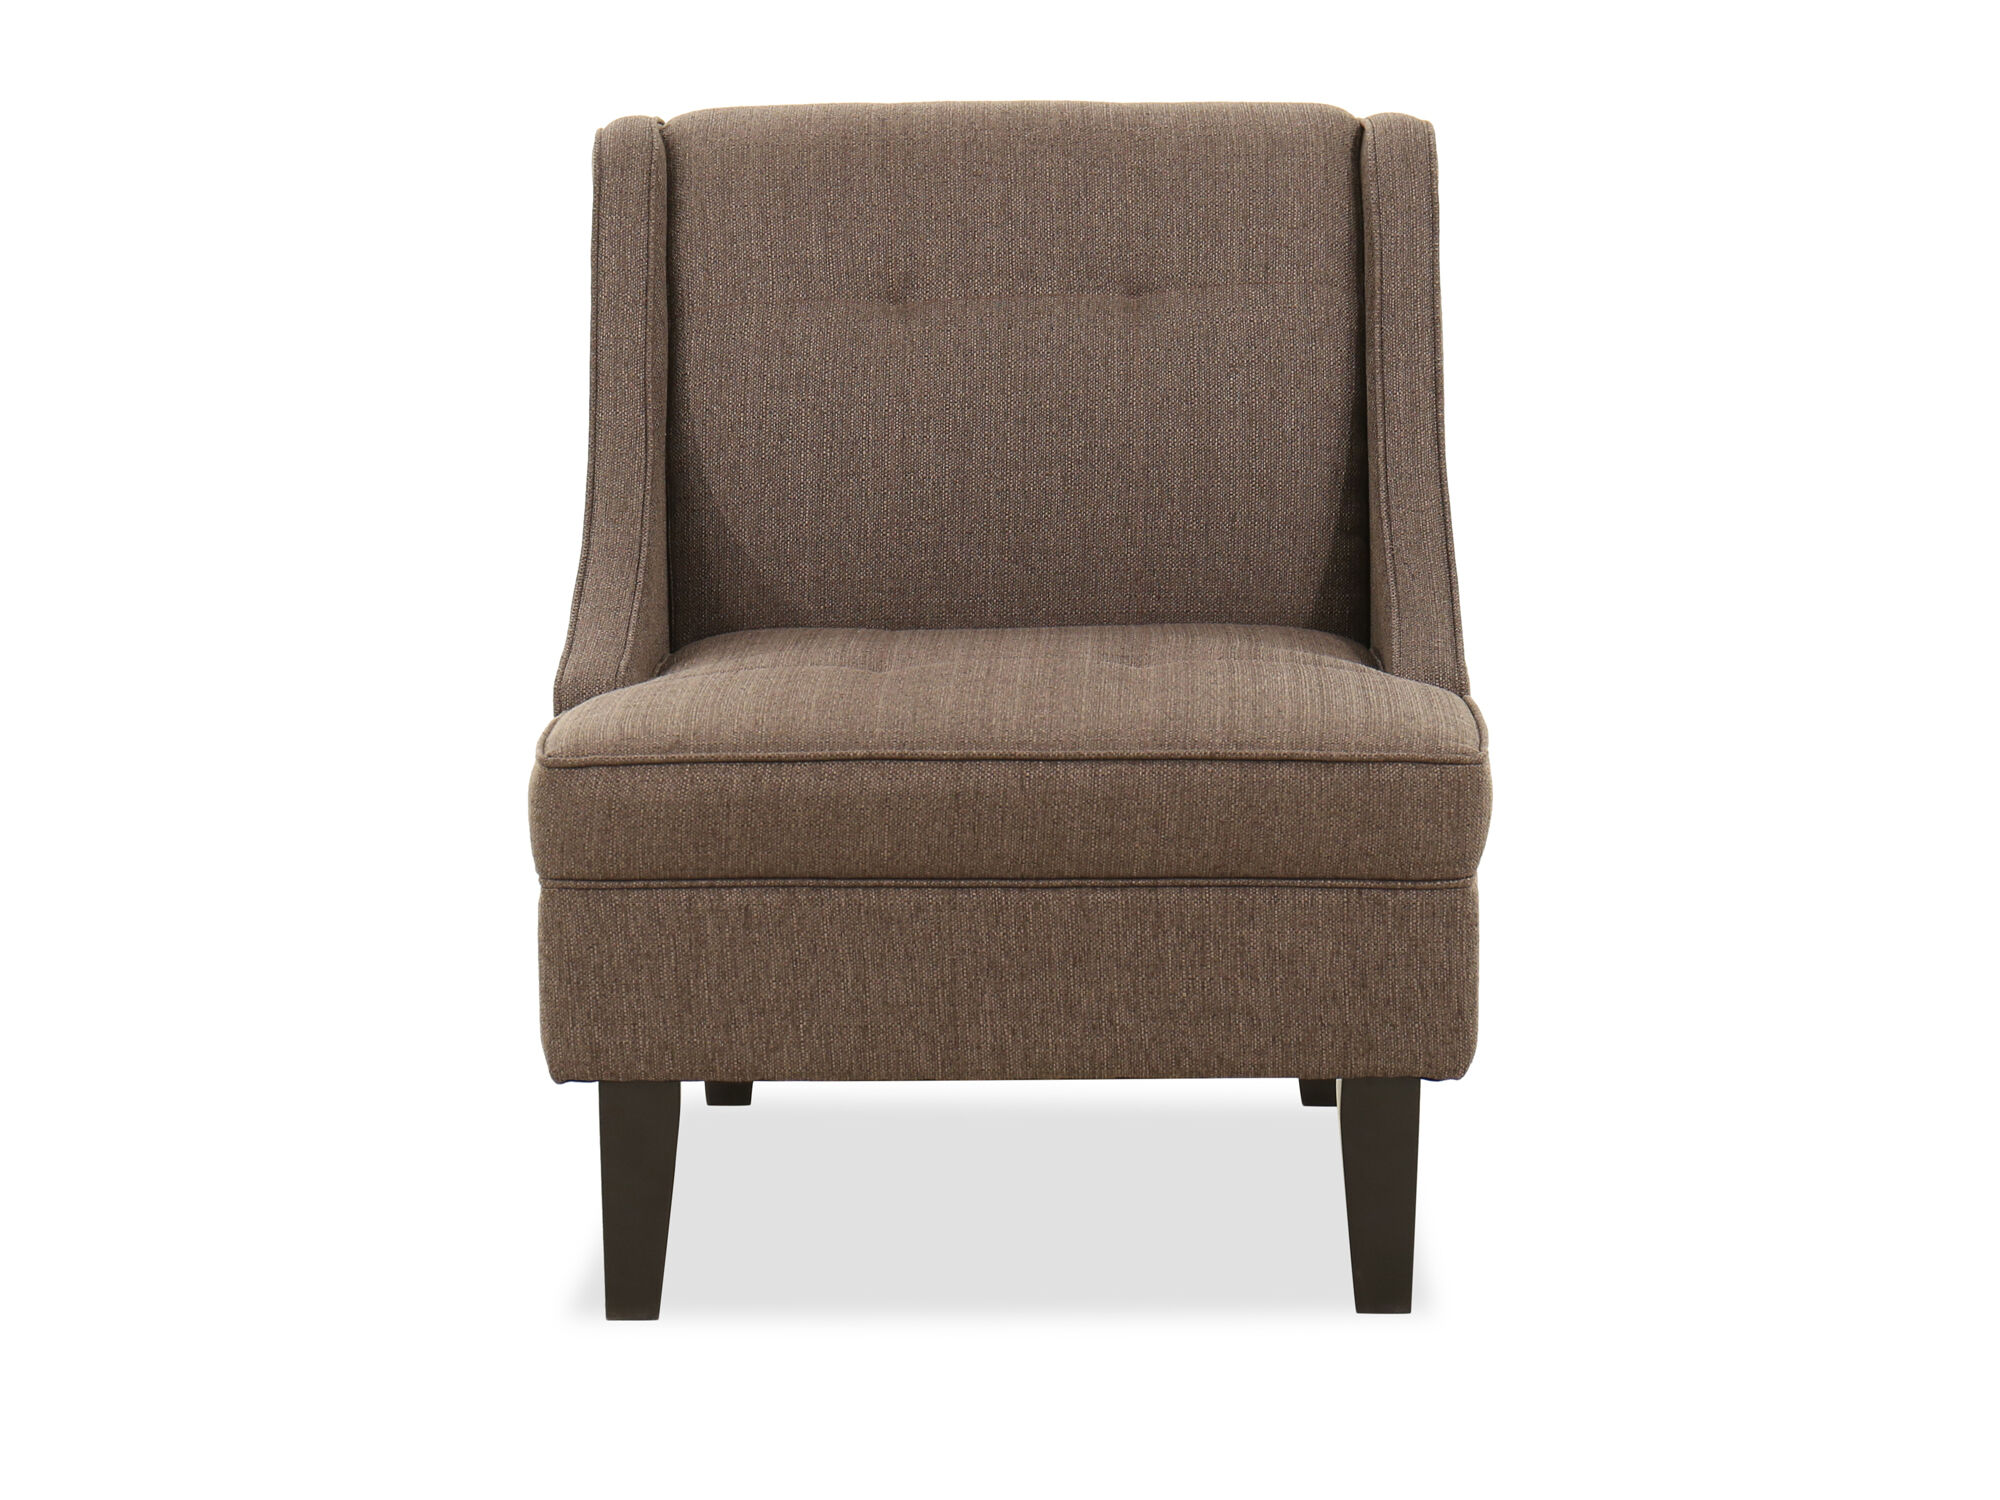 Tufted Contemporary 28 Accent Chair in Dark Rust Gray